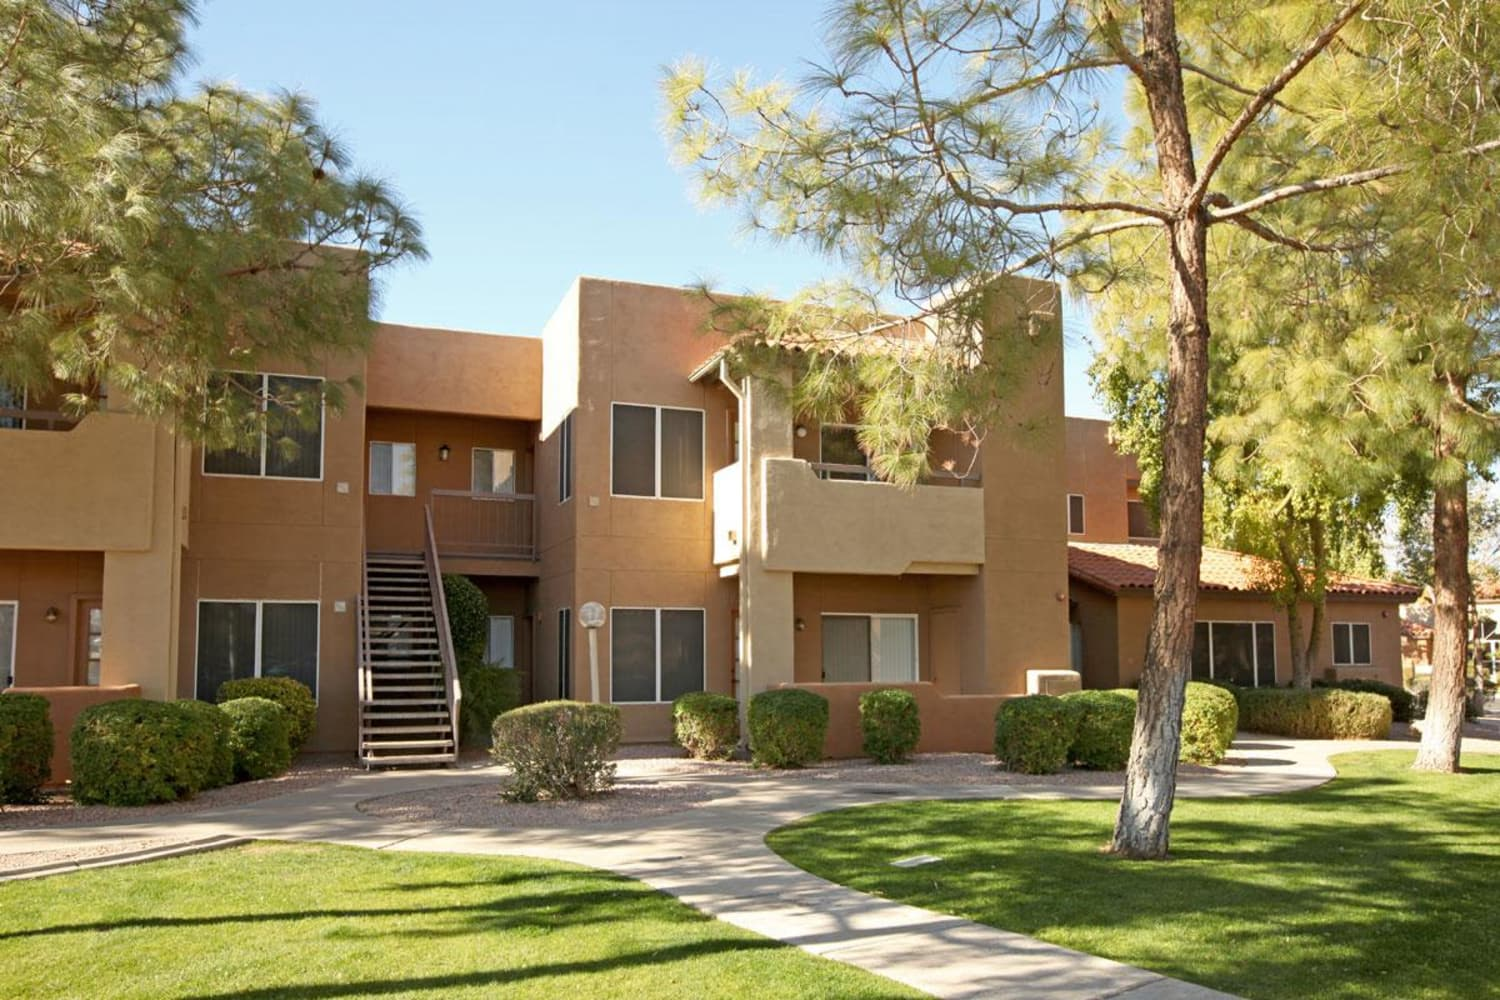 Apartment exteriors at Alcove at the Islands in Gilbert, Arizona